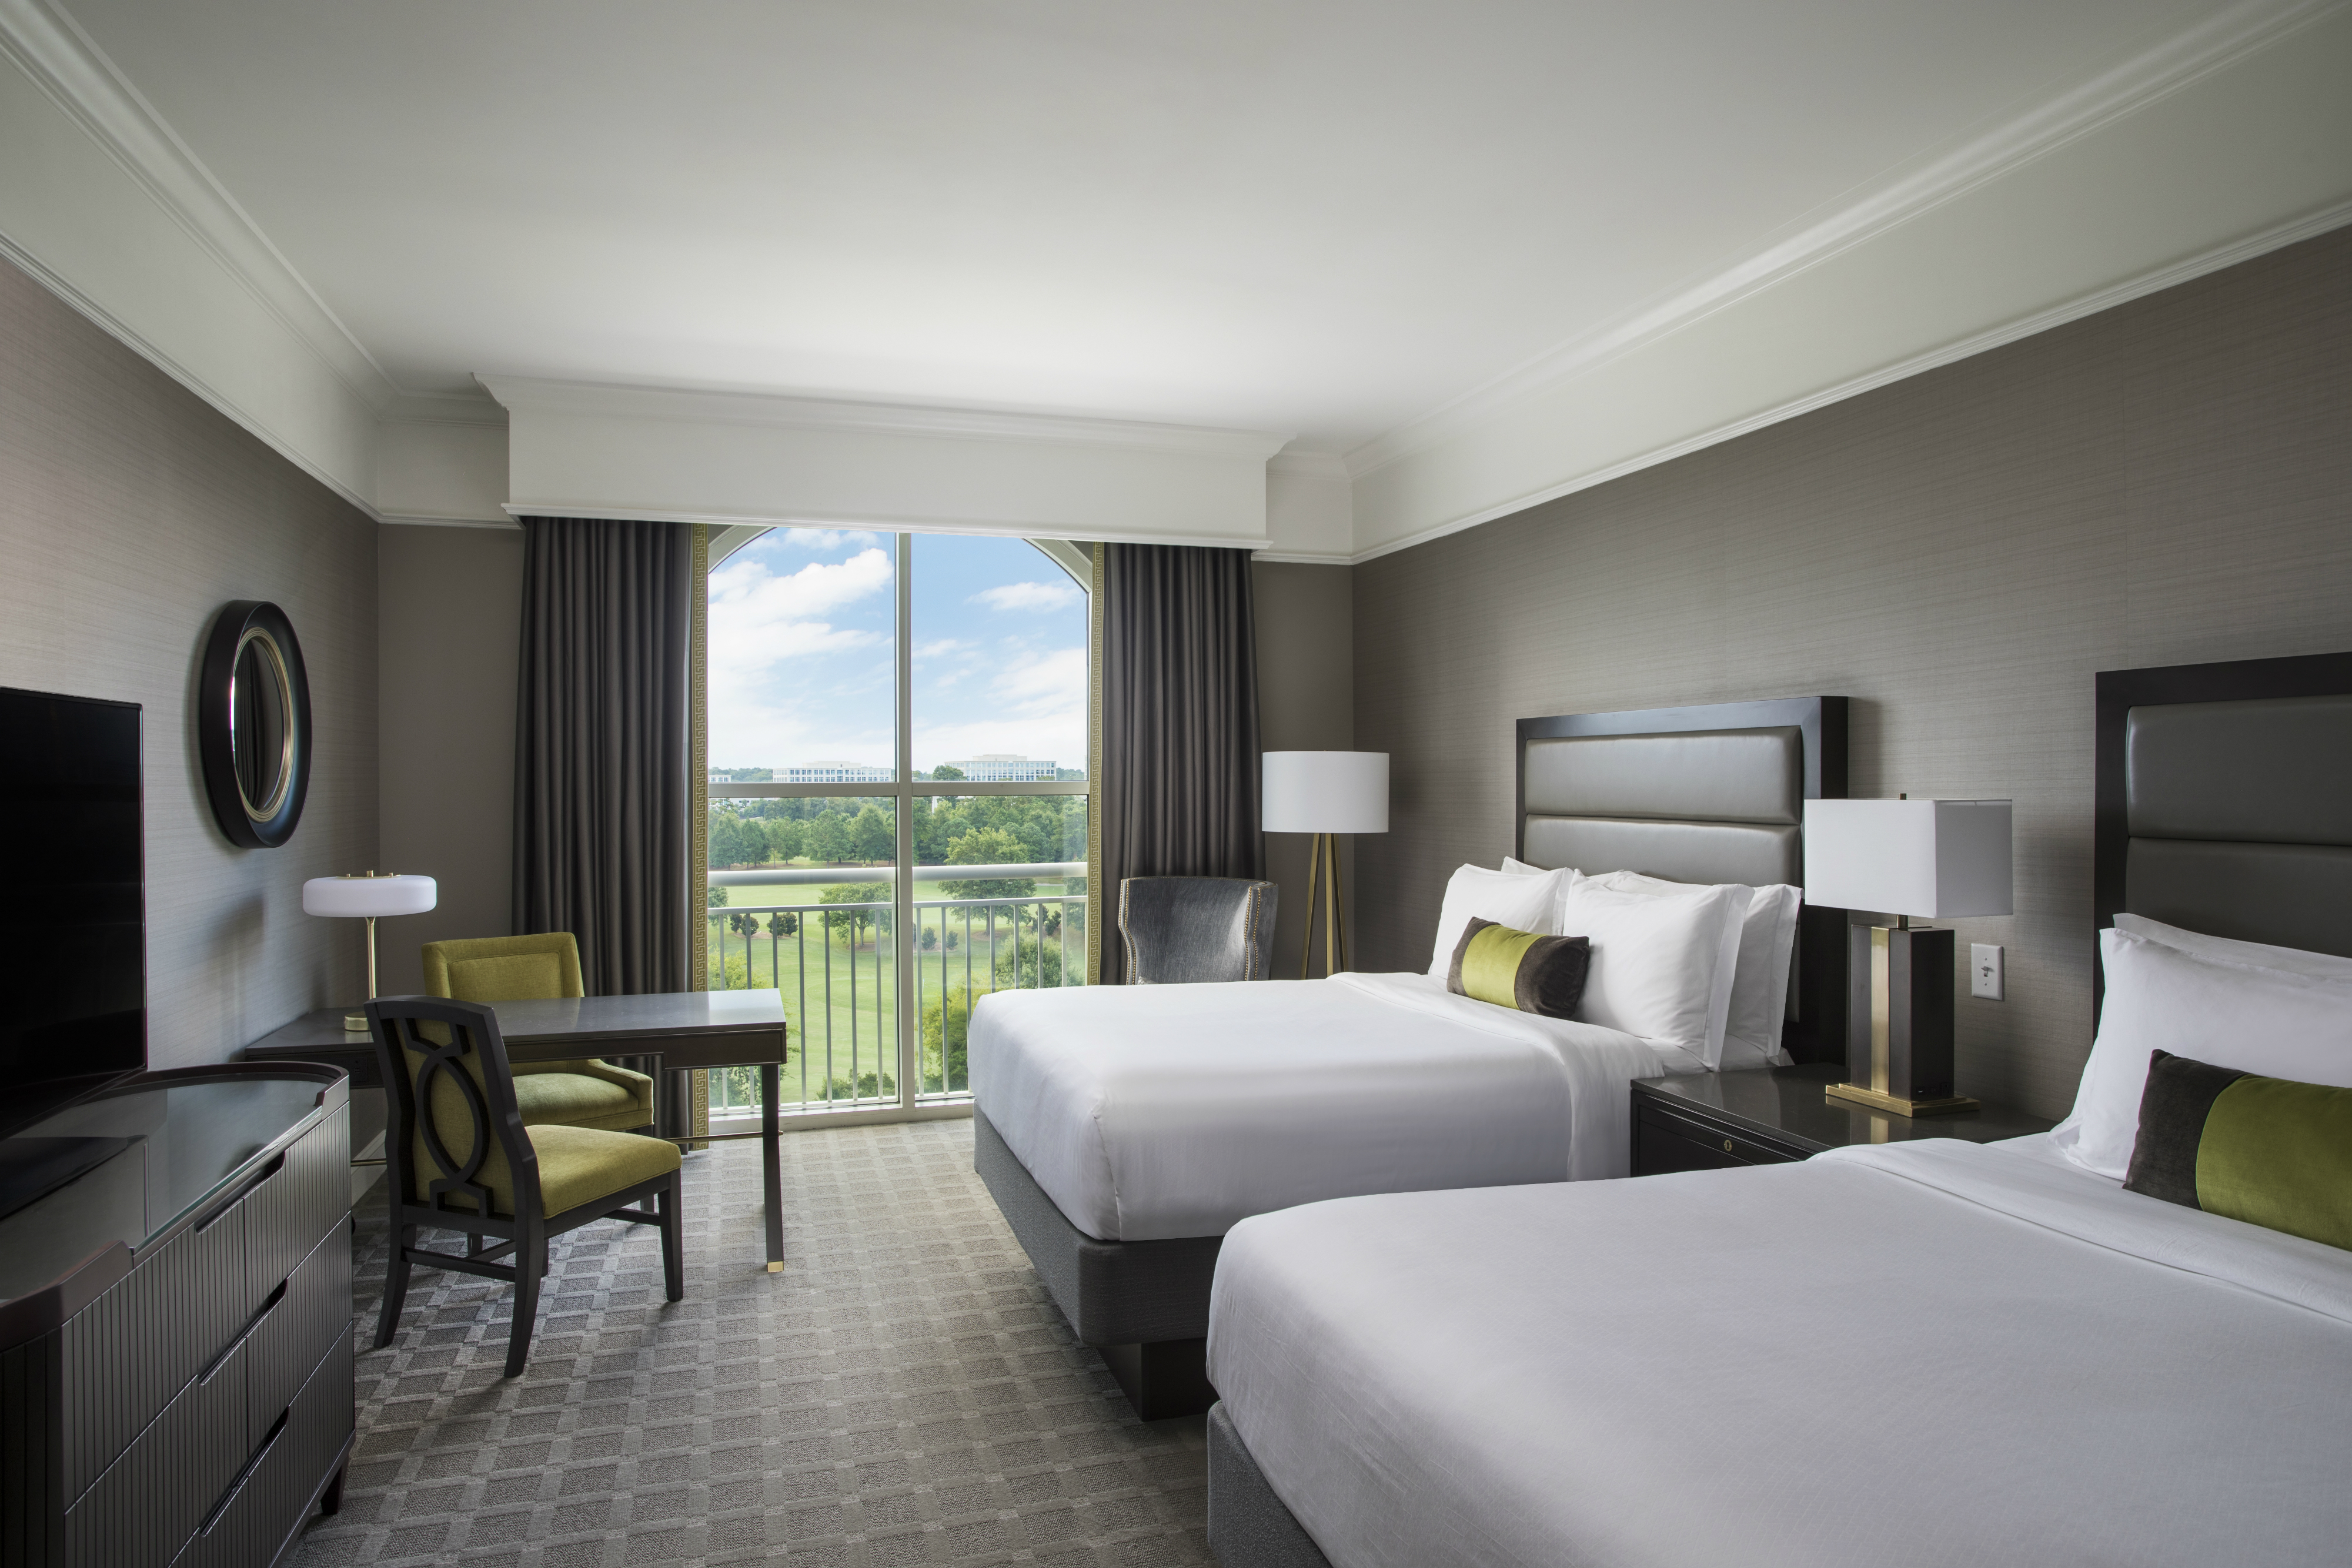 Grand deluxe guestroom with two queen beds at The Ballantyne